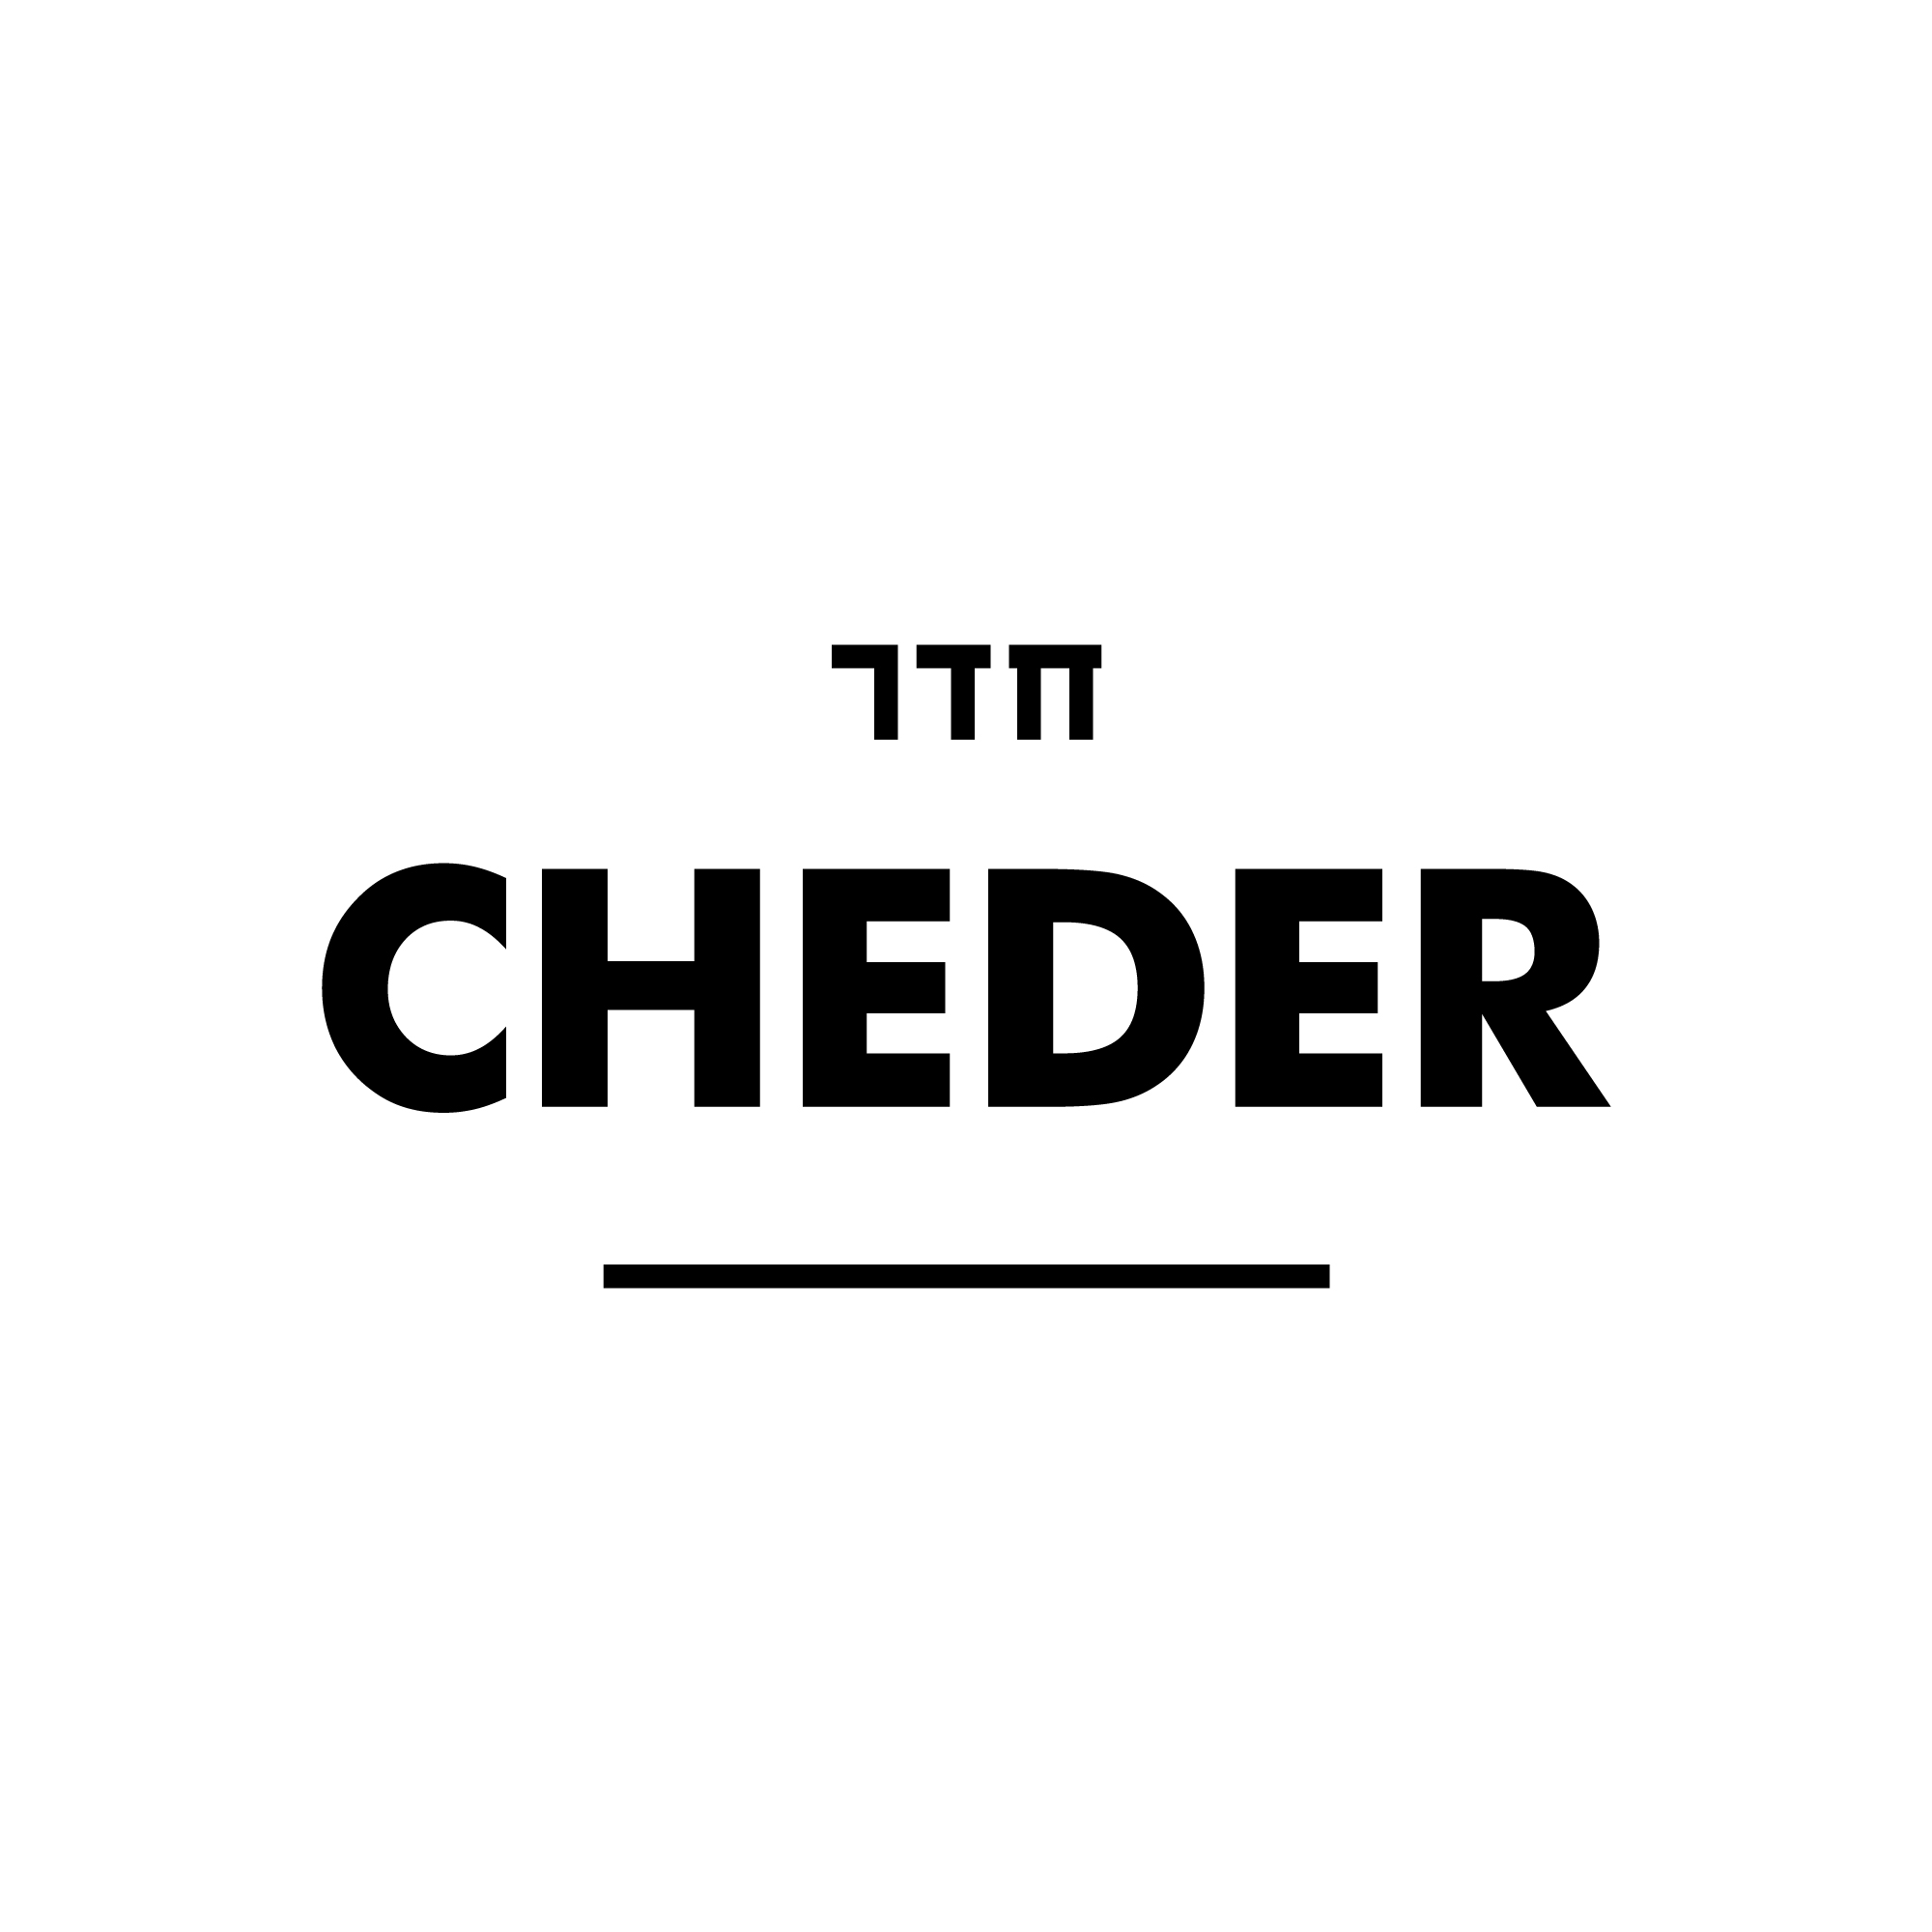 Cheder